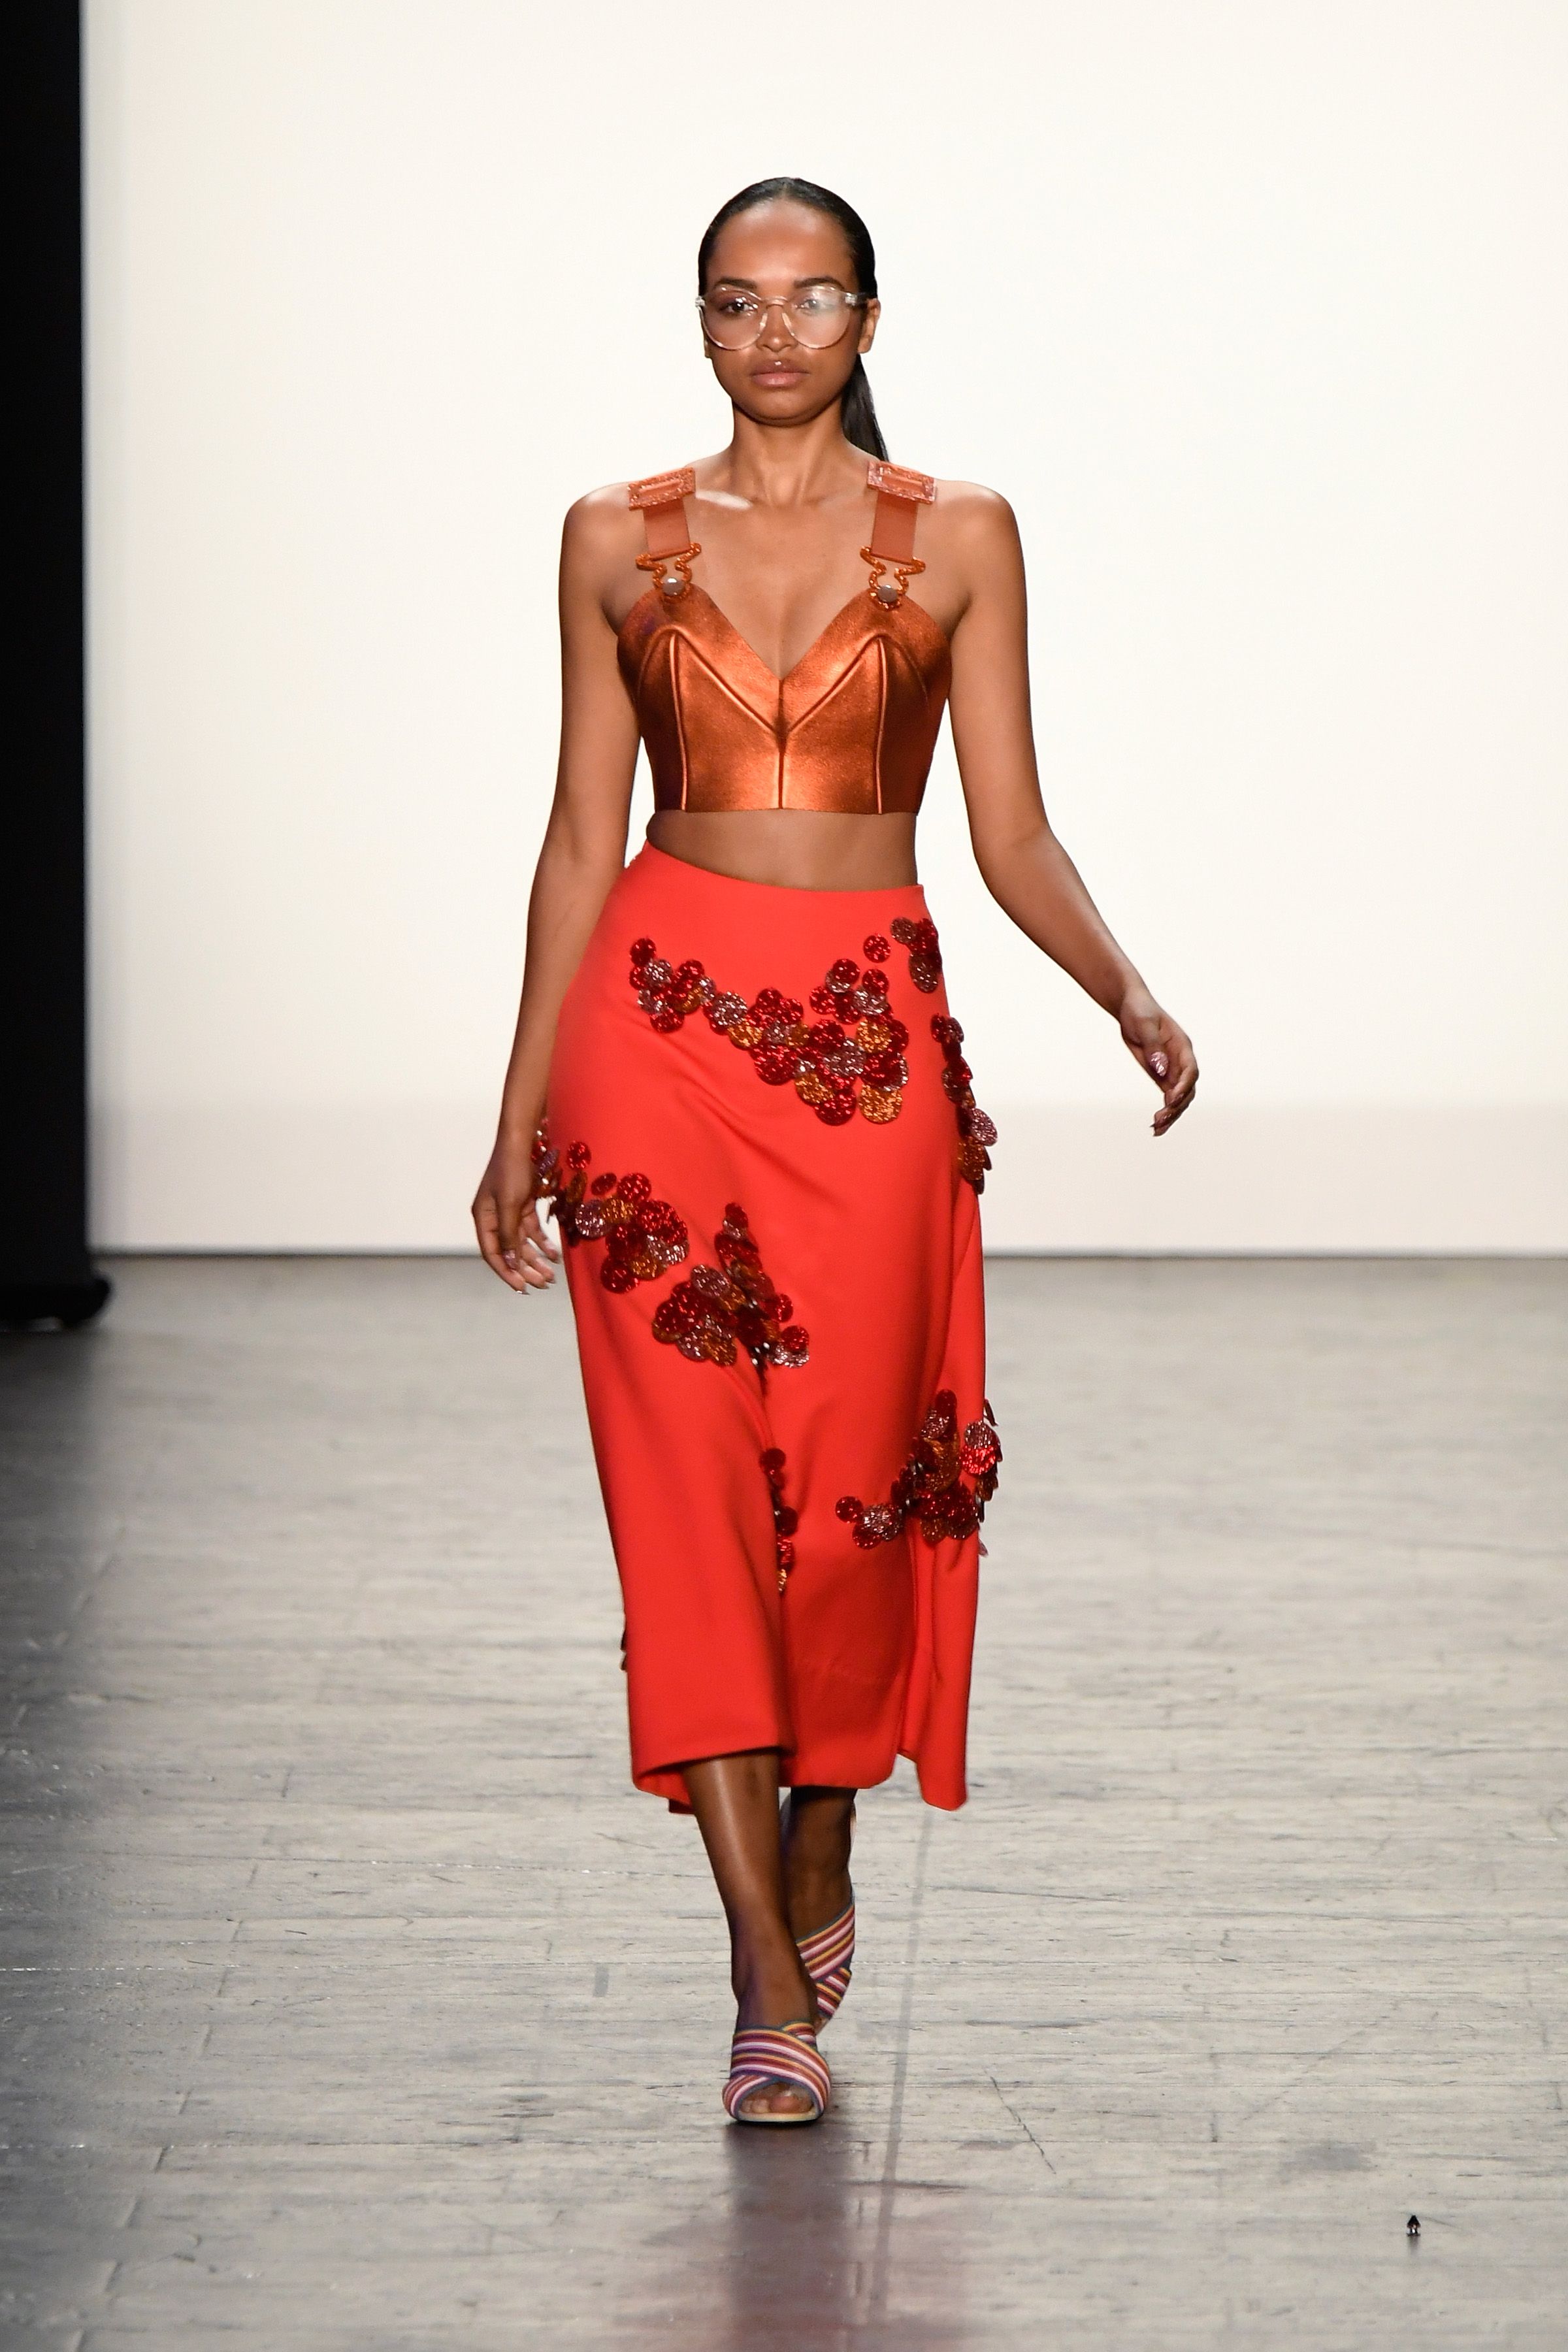 Project Runway Shows Completely Blind At NYFW